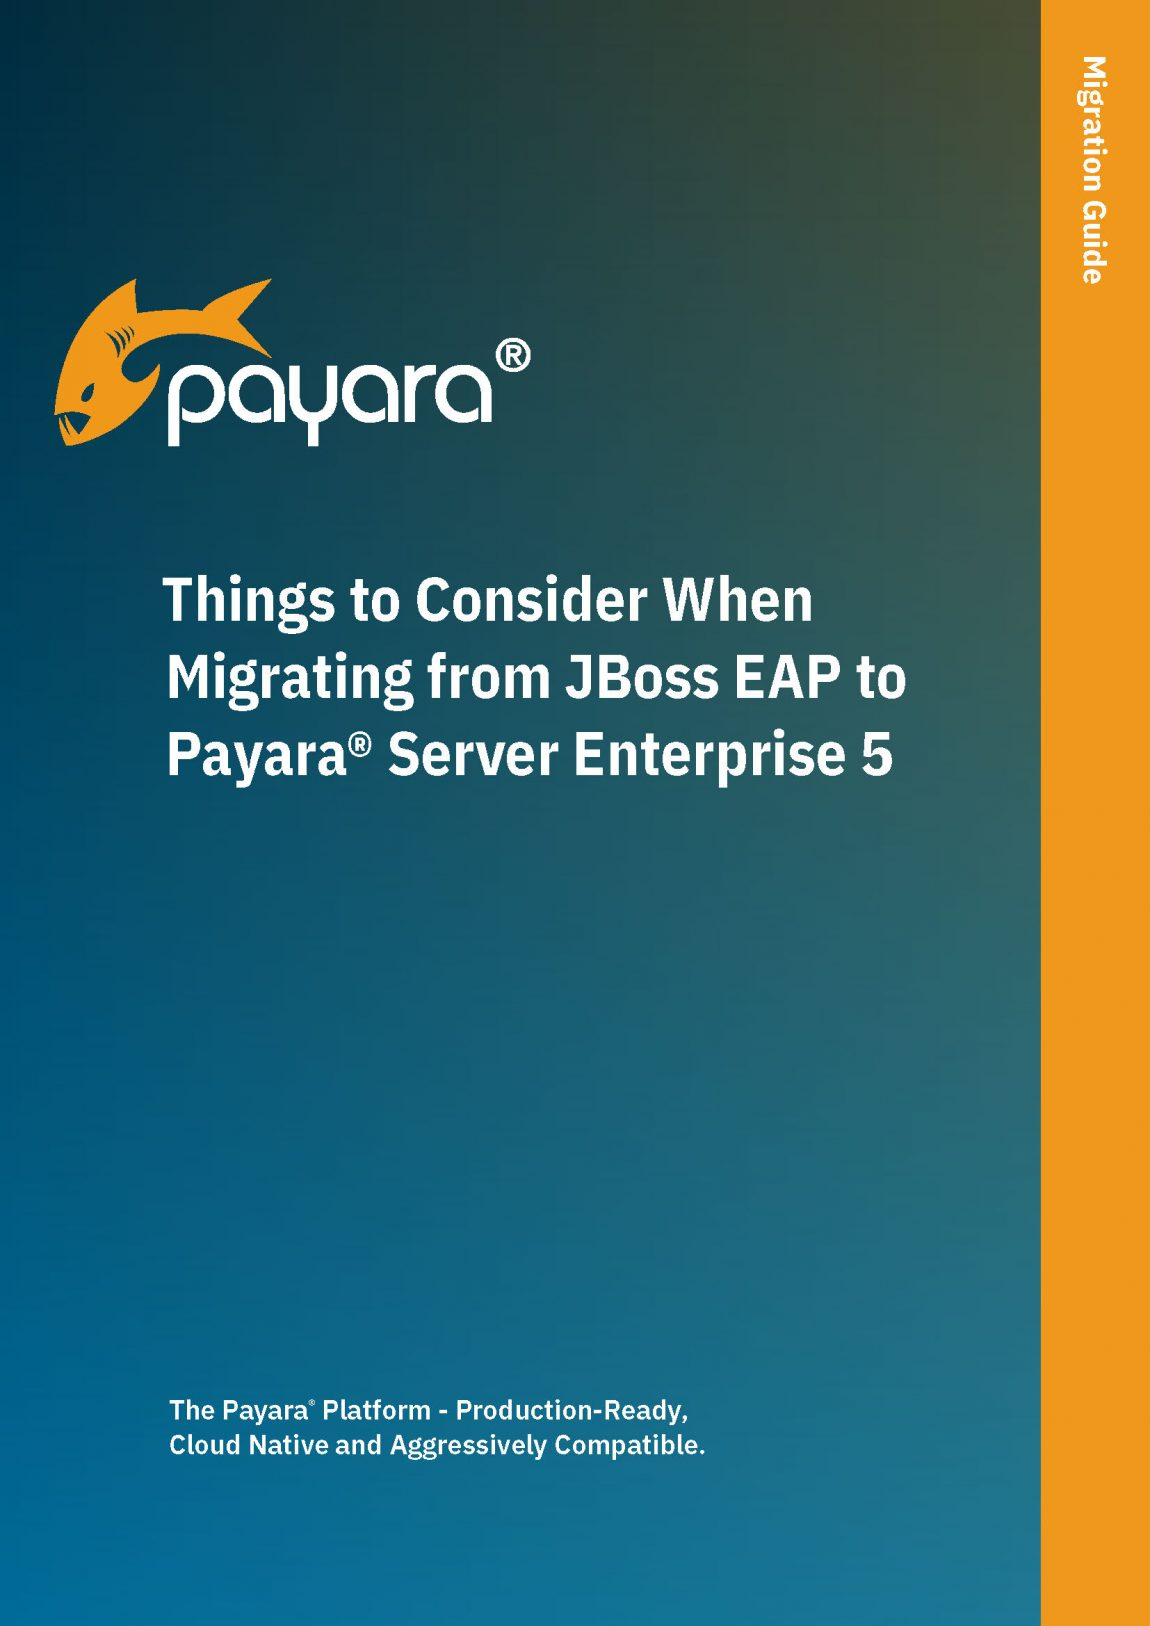 JBoss EAP to Payara